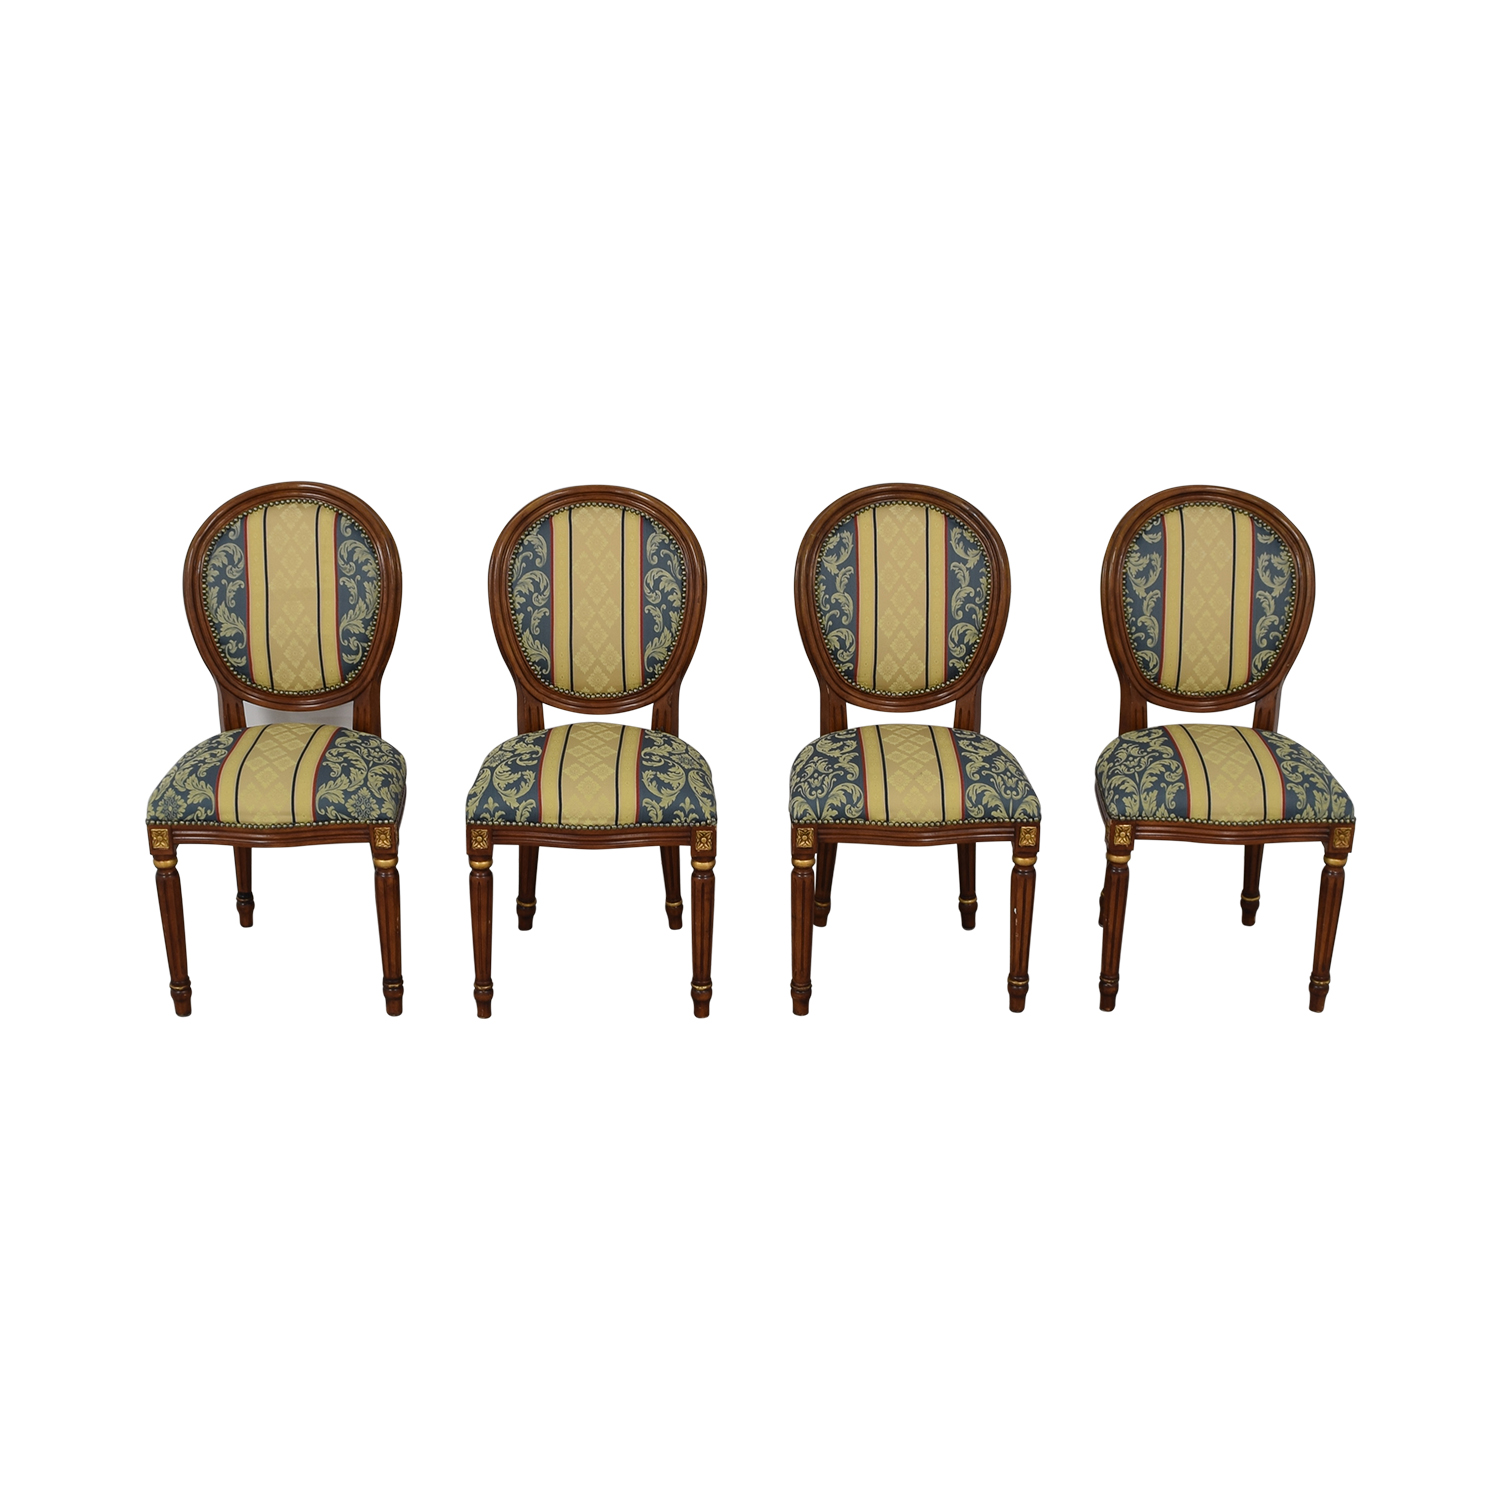 Vintage Upholstered Dining Chairs / Chairs